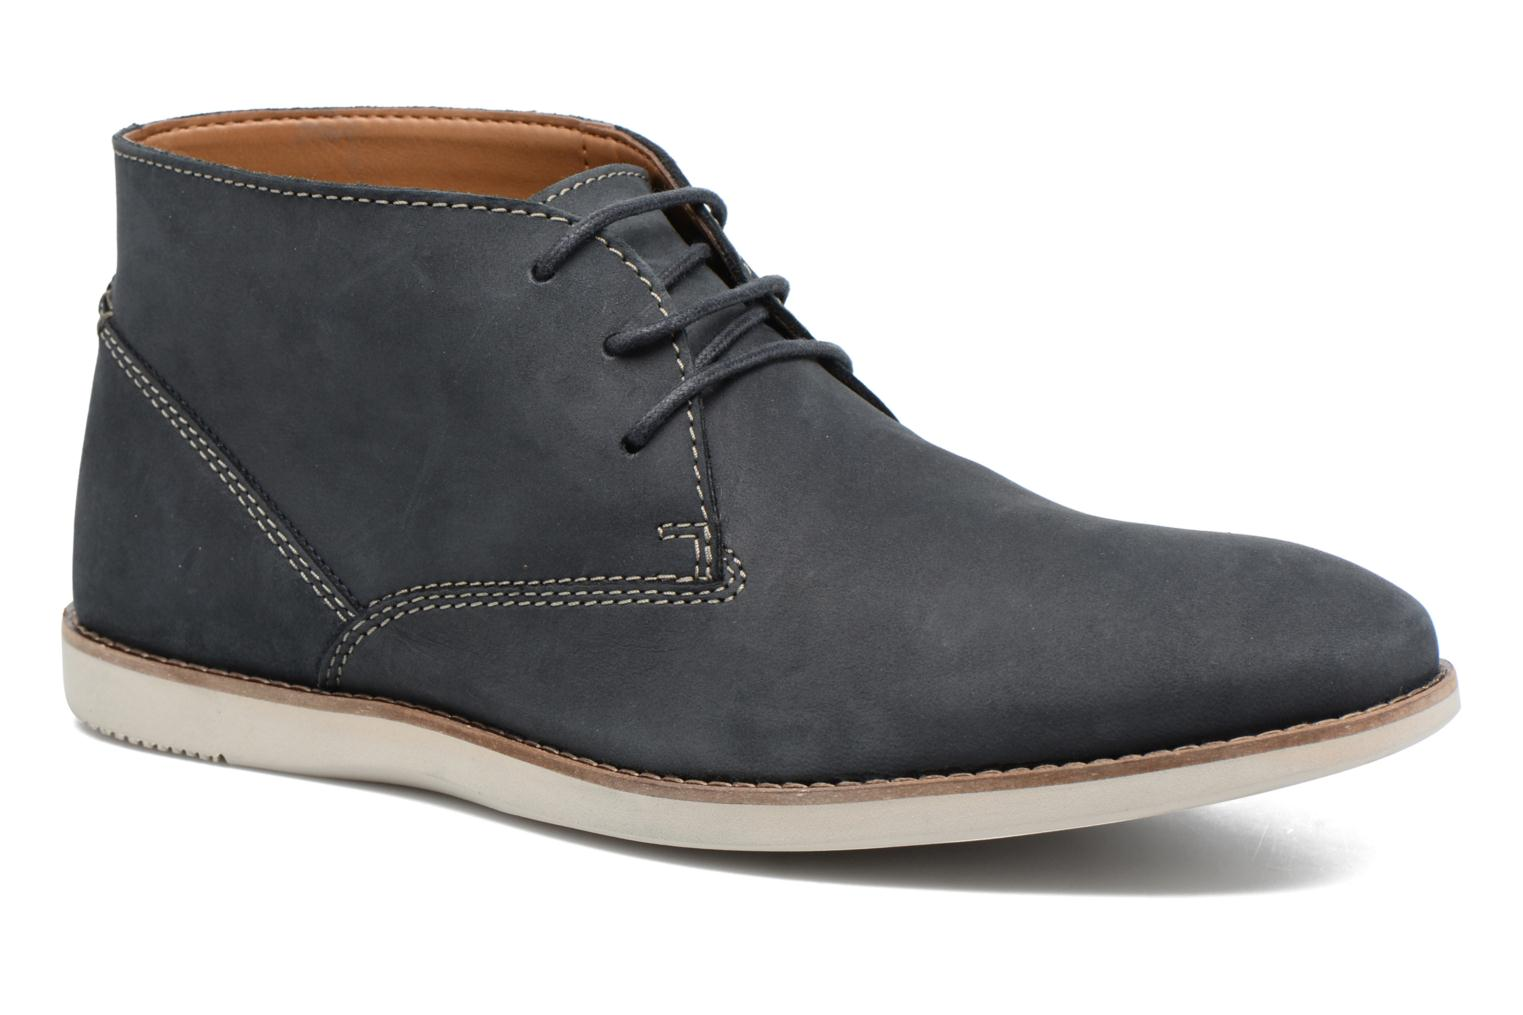 Franson Top by Clarks